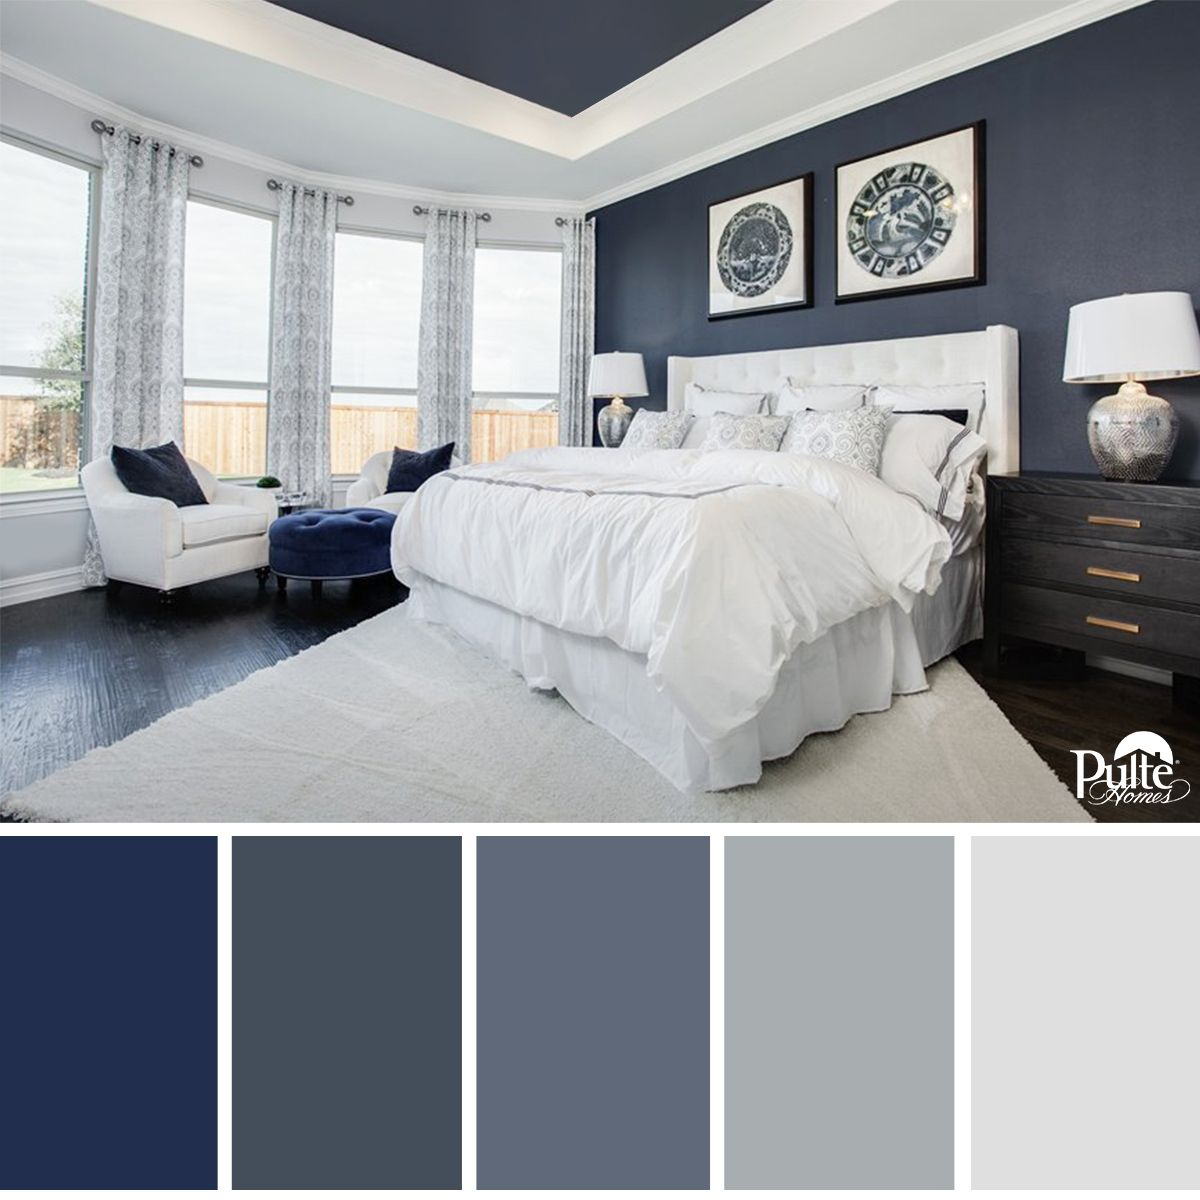 This Bedroom Design Has The Right Idea Rich Blue Color